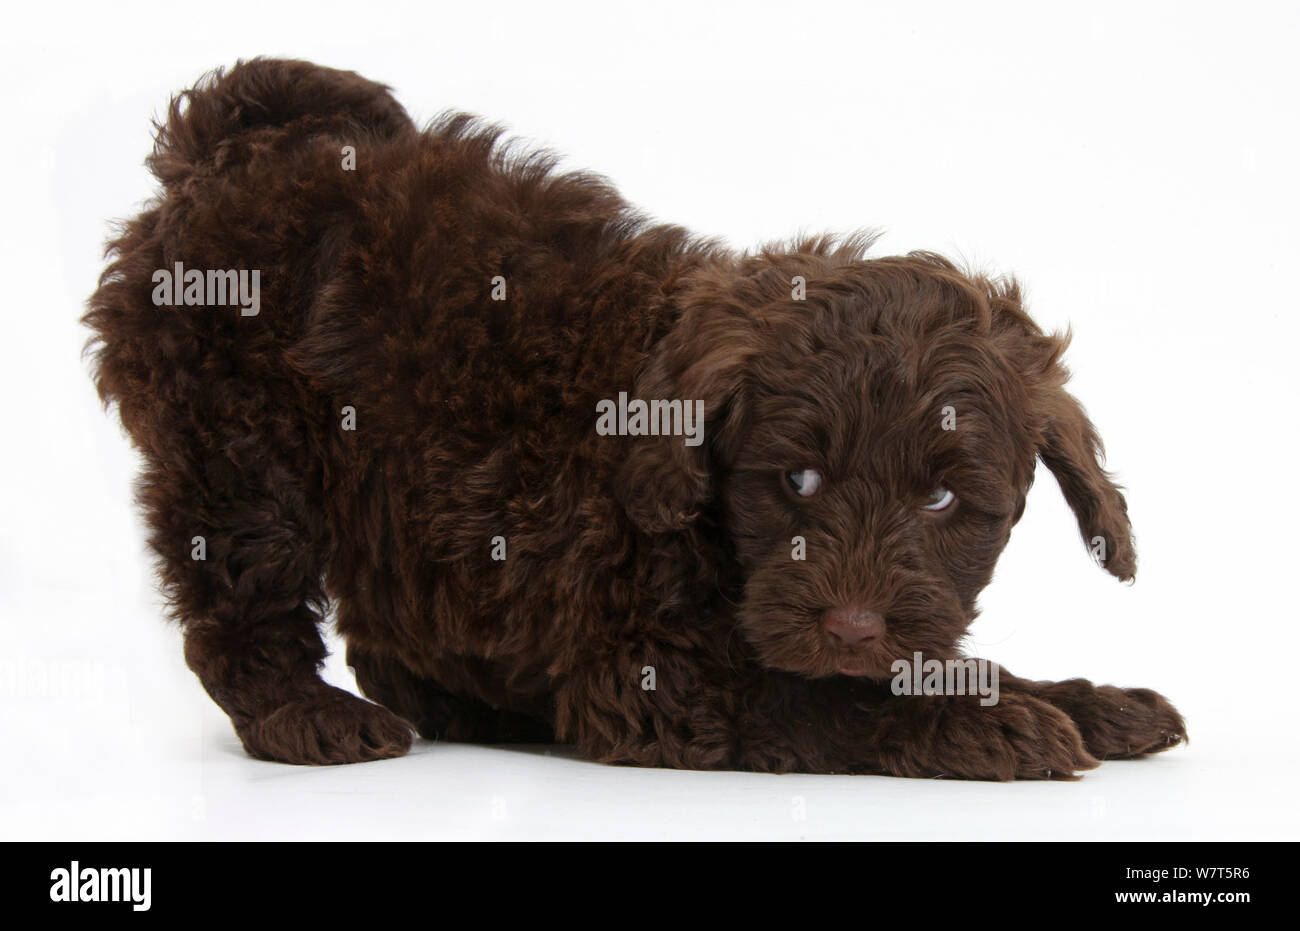 Cute Chocolate Toy Goldendoodle Puppy In Play Bow Stock Photo Alamy